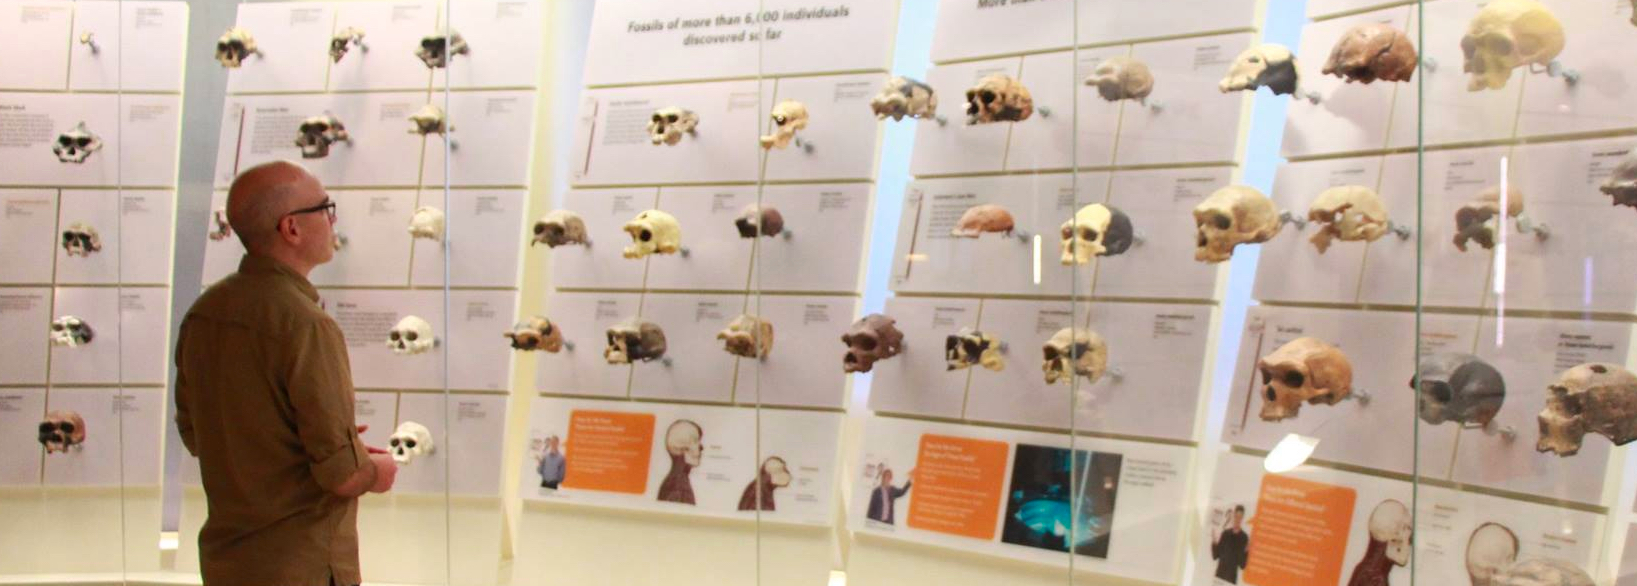 Jim looking at skulls in the Hall of Human Origins at the Smithsonian